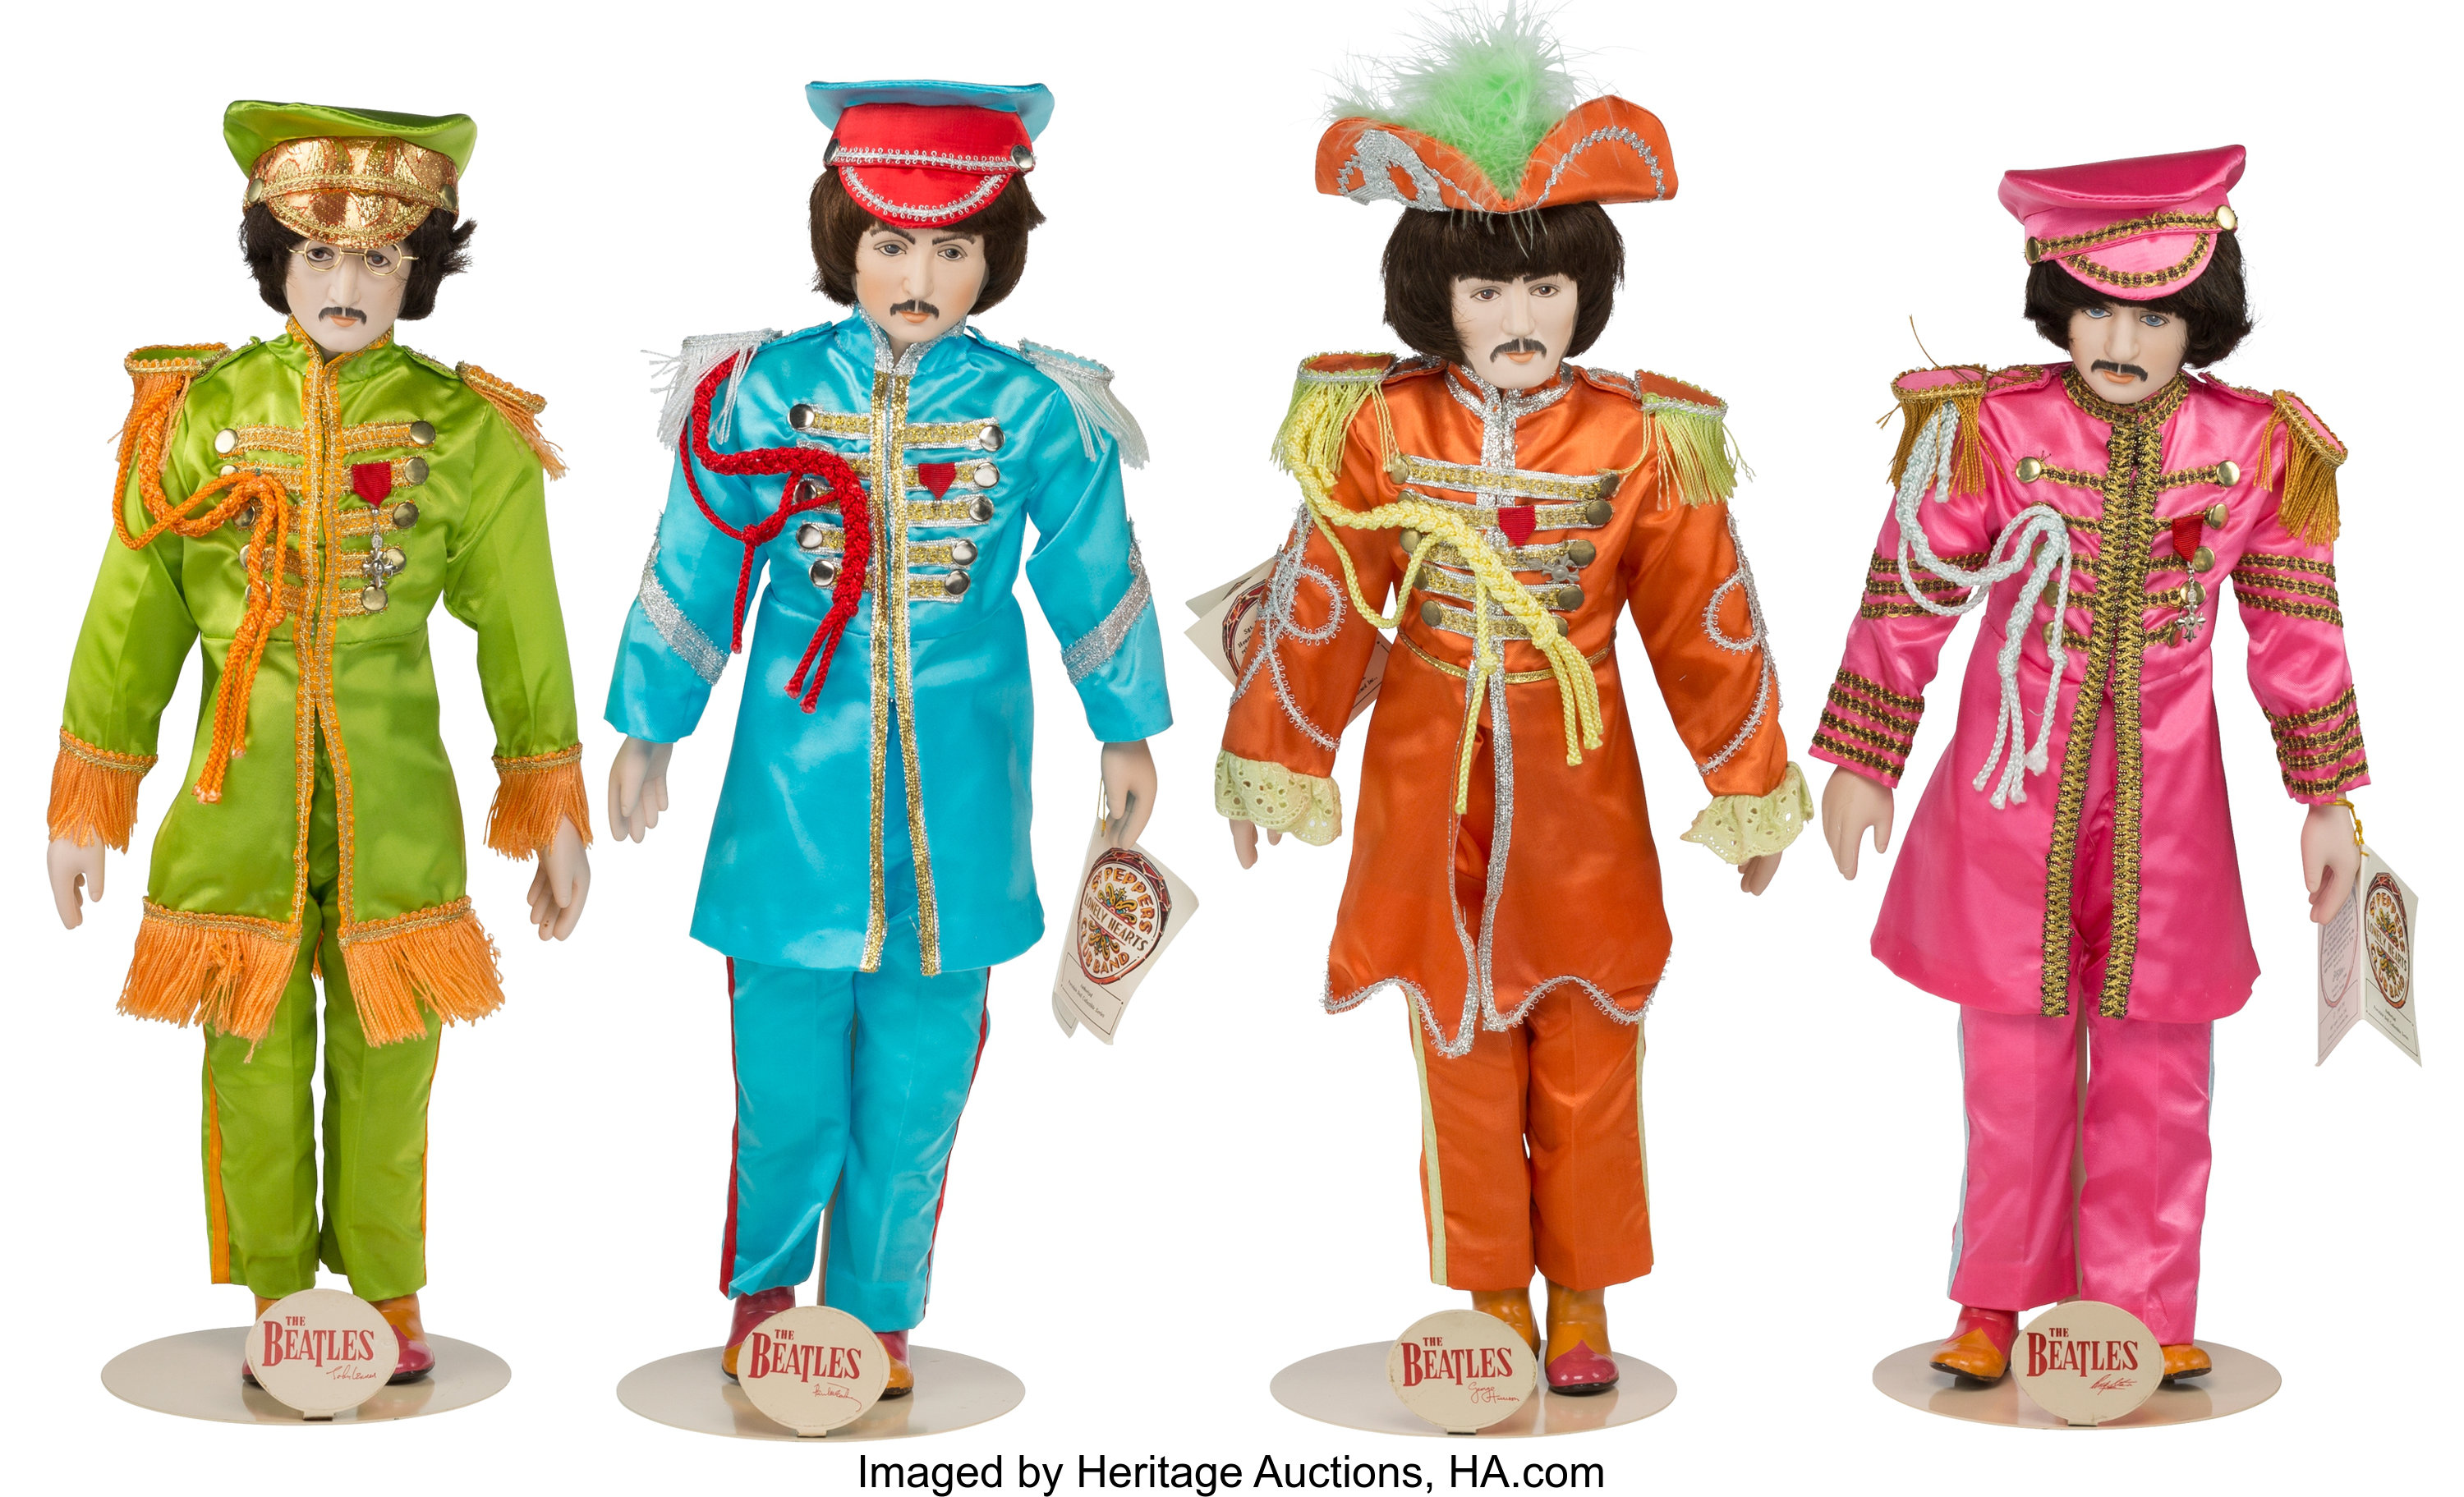 Beatles Sgt Pepper Porcelain Doll Set Of Four With Stands In Lot 89188 Heritage Auctions